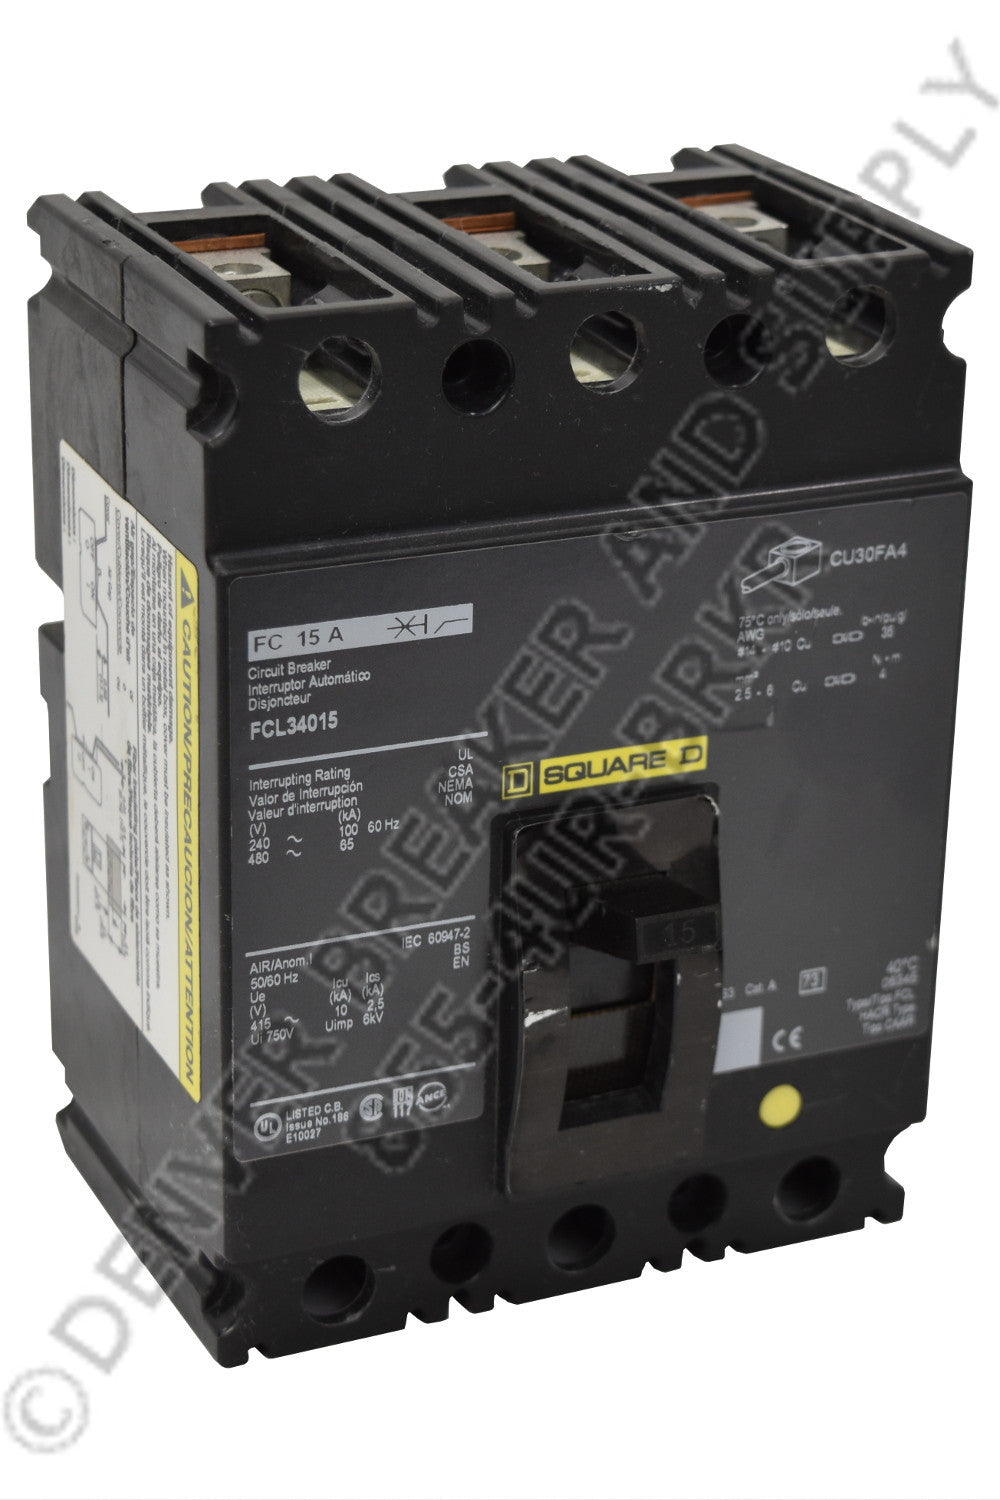 Square D FCP34070 Circuit Breakers